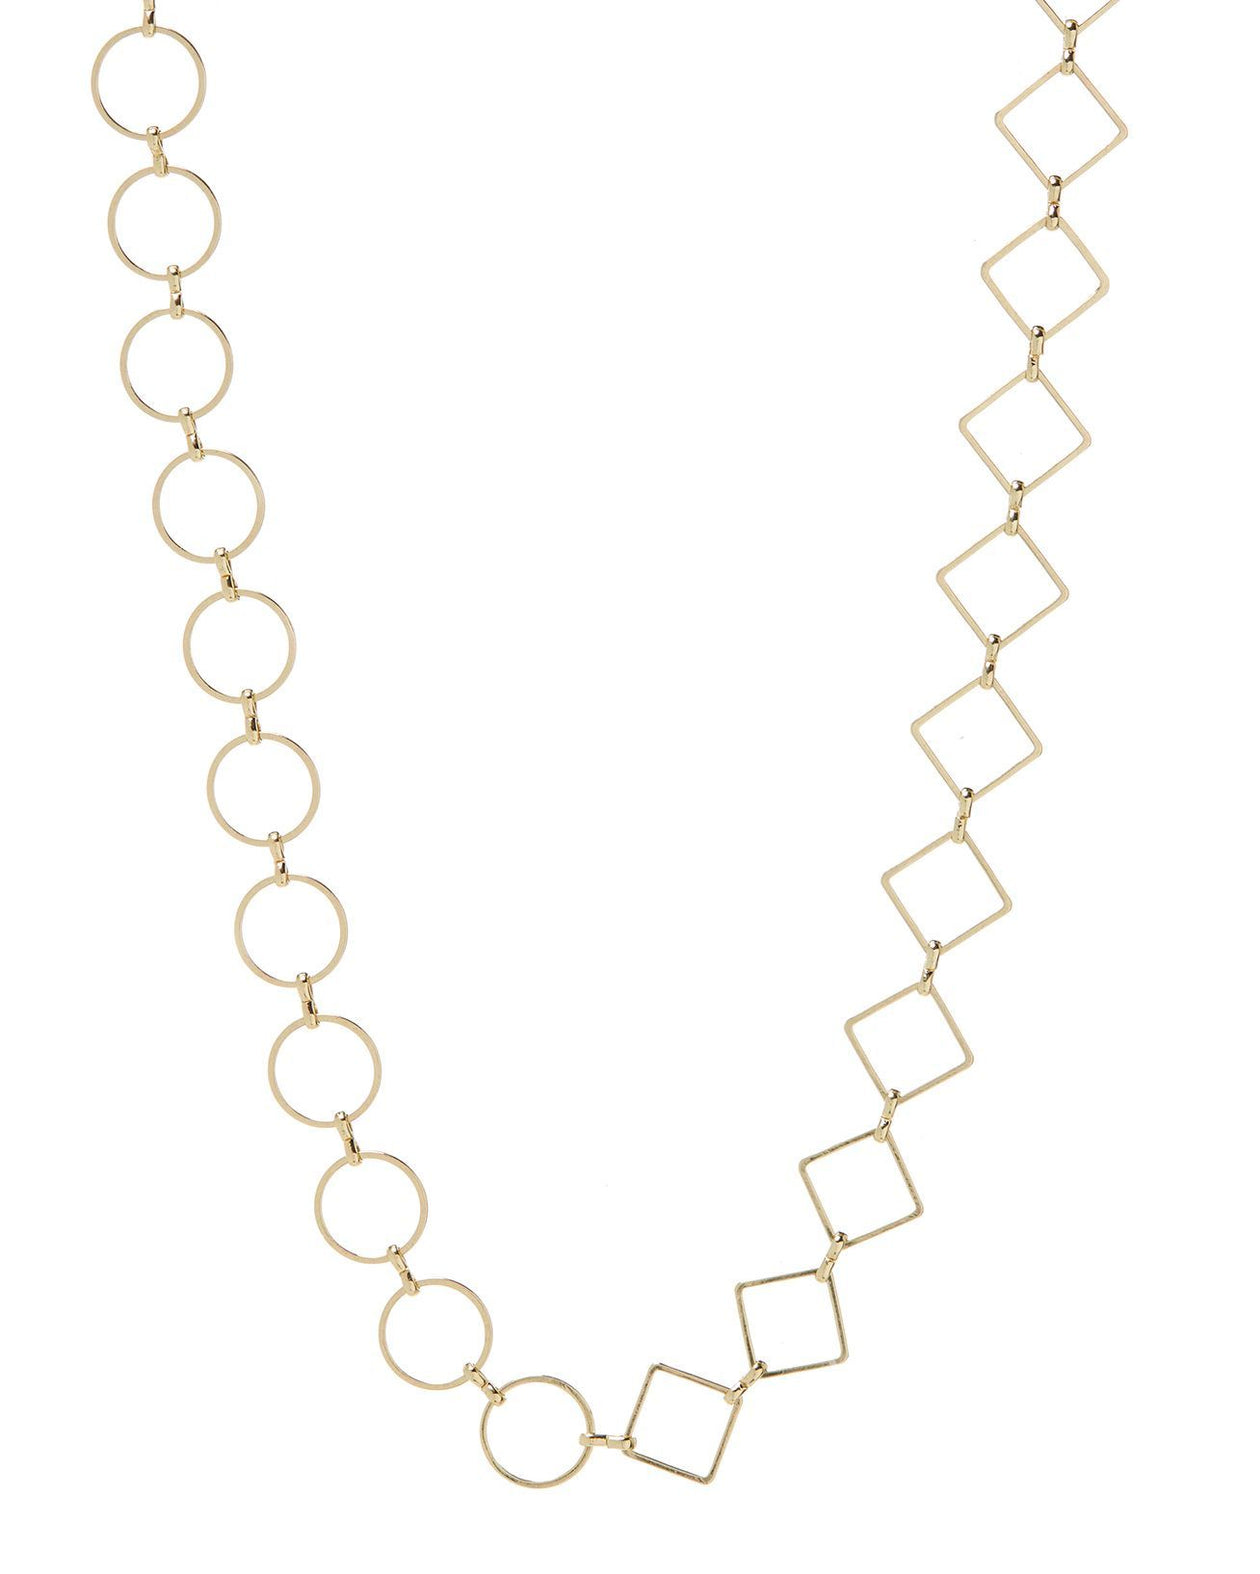 Nour Mixed Chain Necklace - Gold | Luv AJ Women's Jewelry